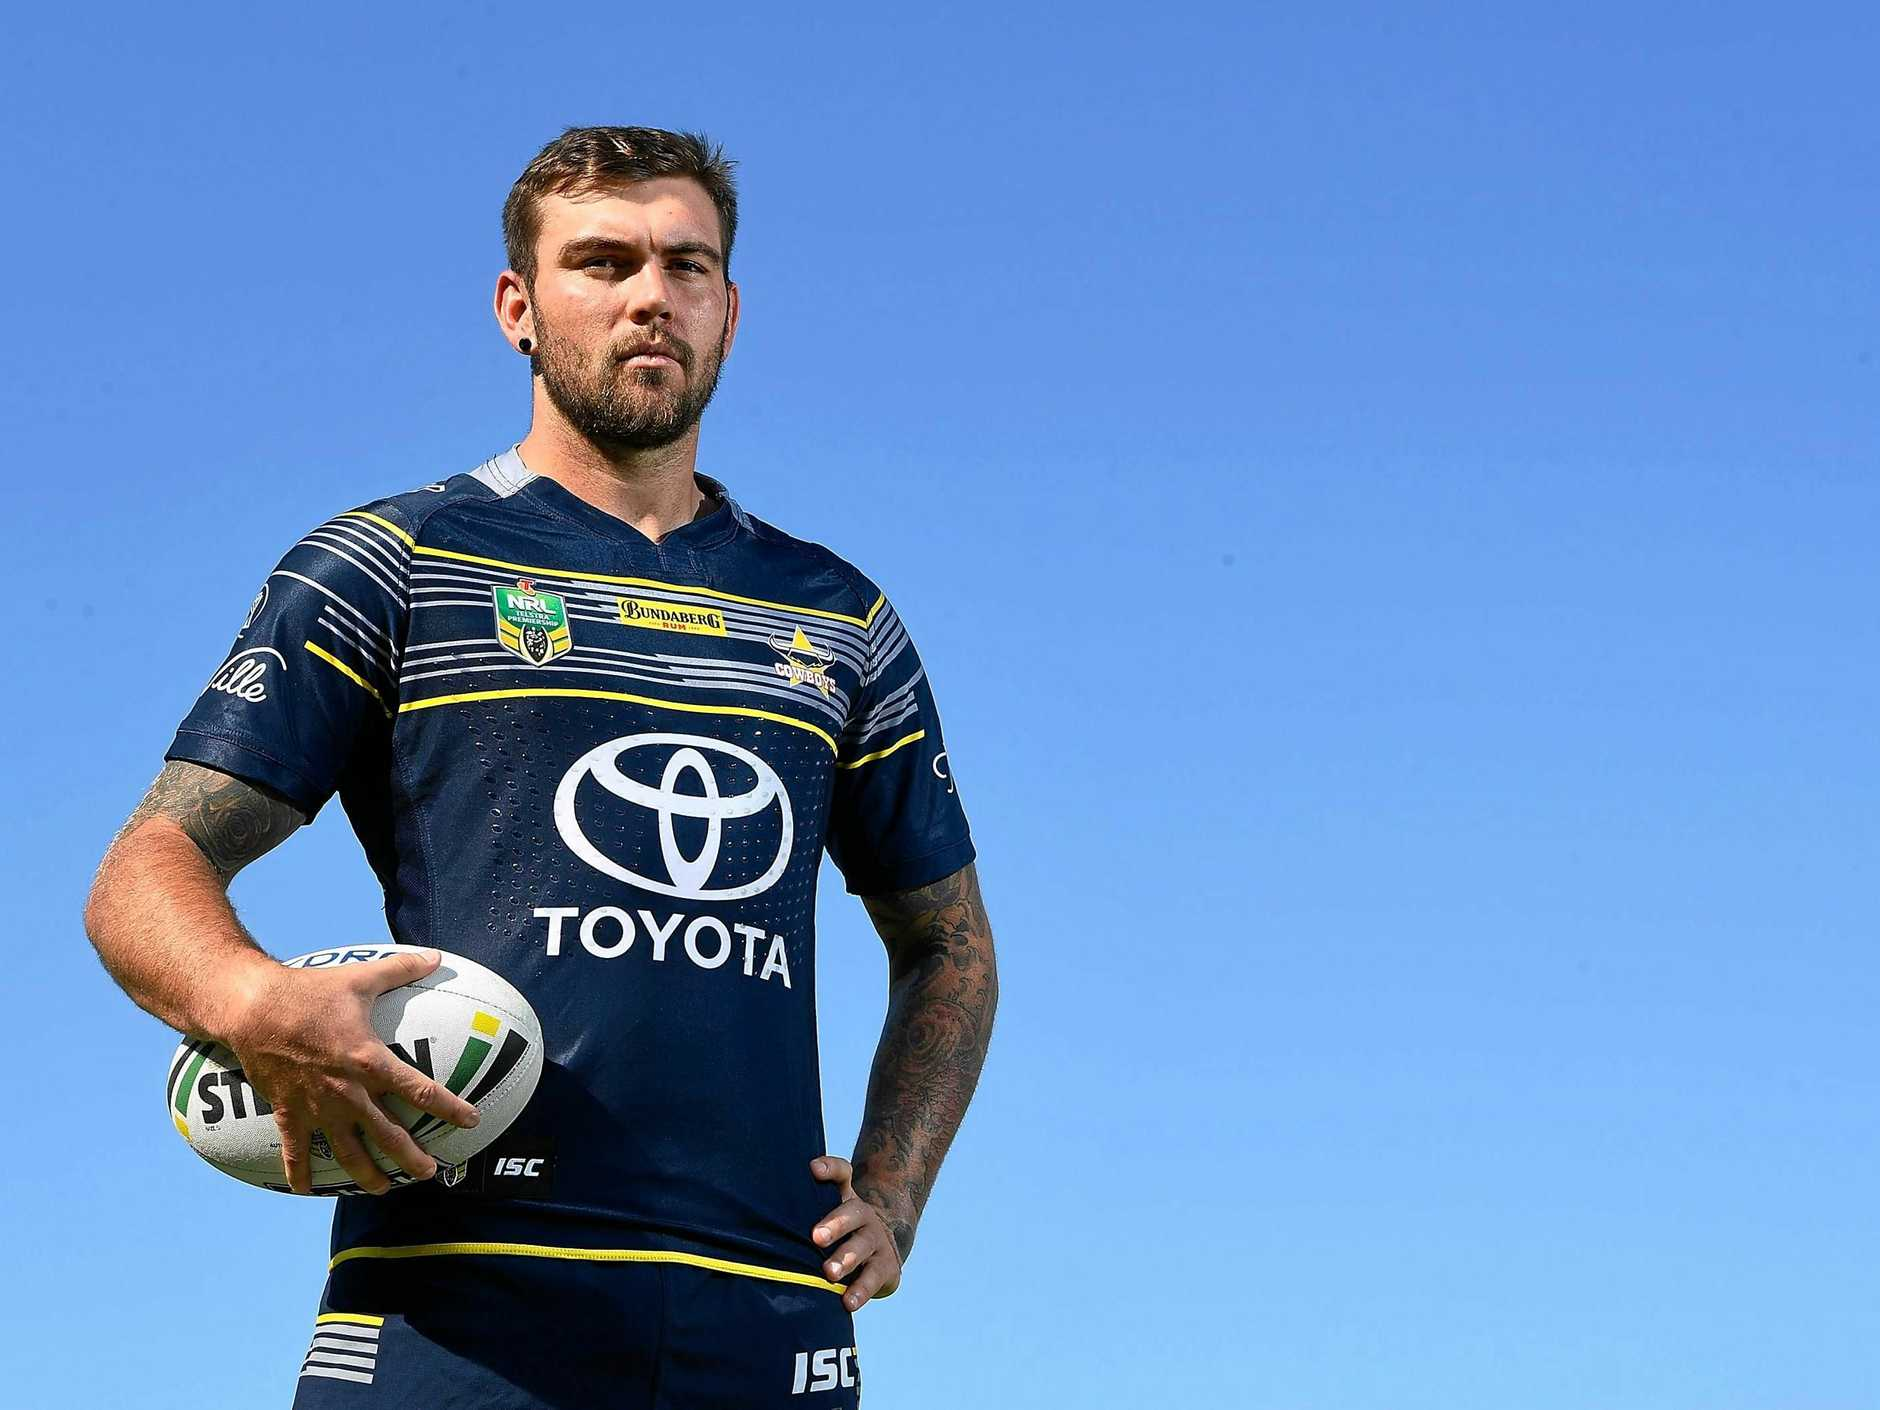 TOWNSVILLE, AUSTRALIA - SEPTEMBER 25:  Kyle Feldt of the Cowboys poses during a North Queensland Cowboys NRL media opportunity at Cowboys HQ on September 25, 2017 in Townsville, Australia.  (Photo by Ian Hitchcock/Getty Images)